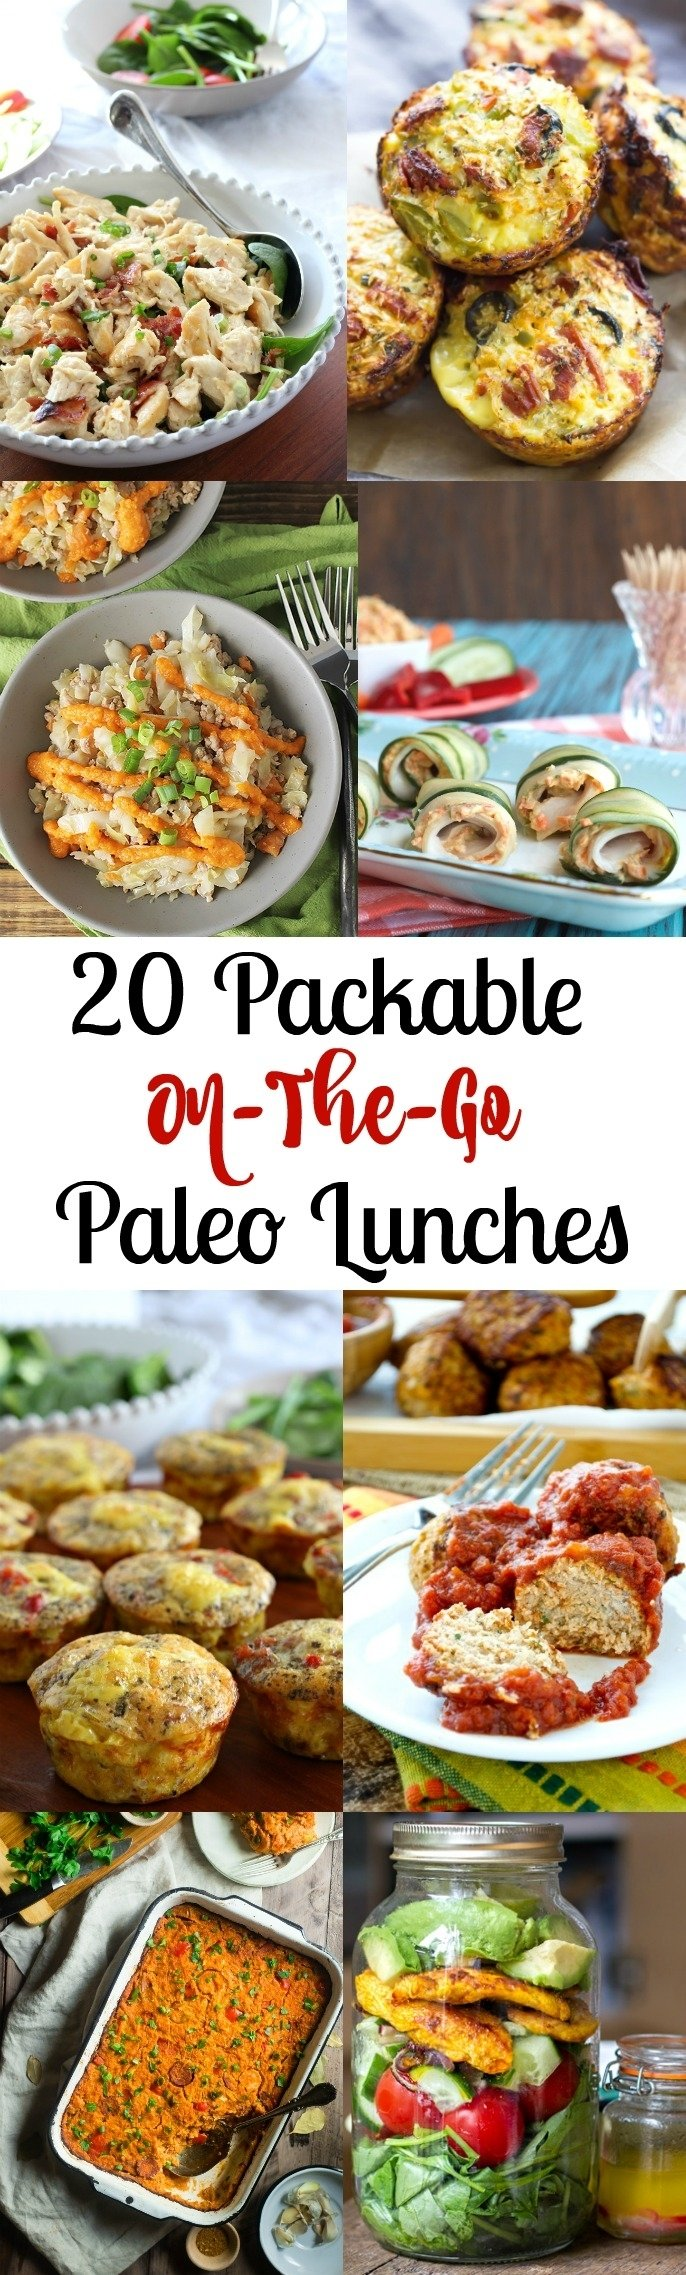 10 Best Paleo Lunch Ideas At Work 20 packable on the go paleo lunches the paleo running momma